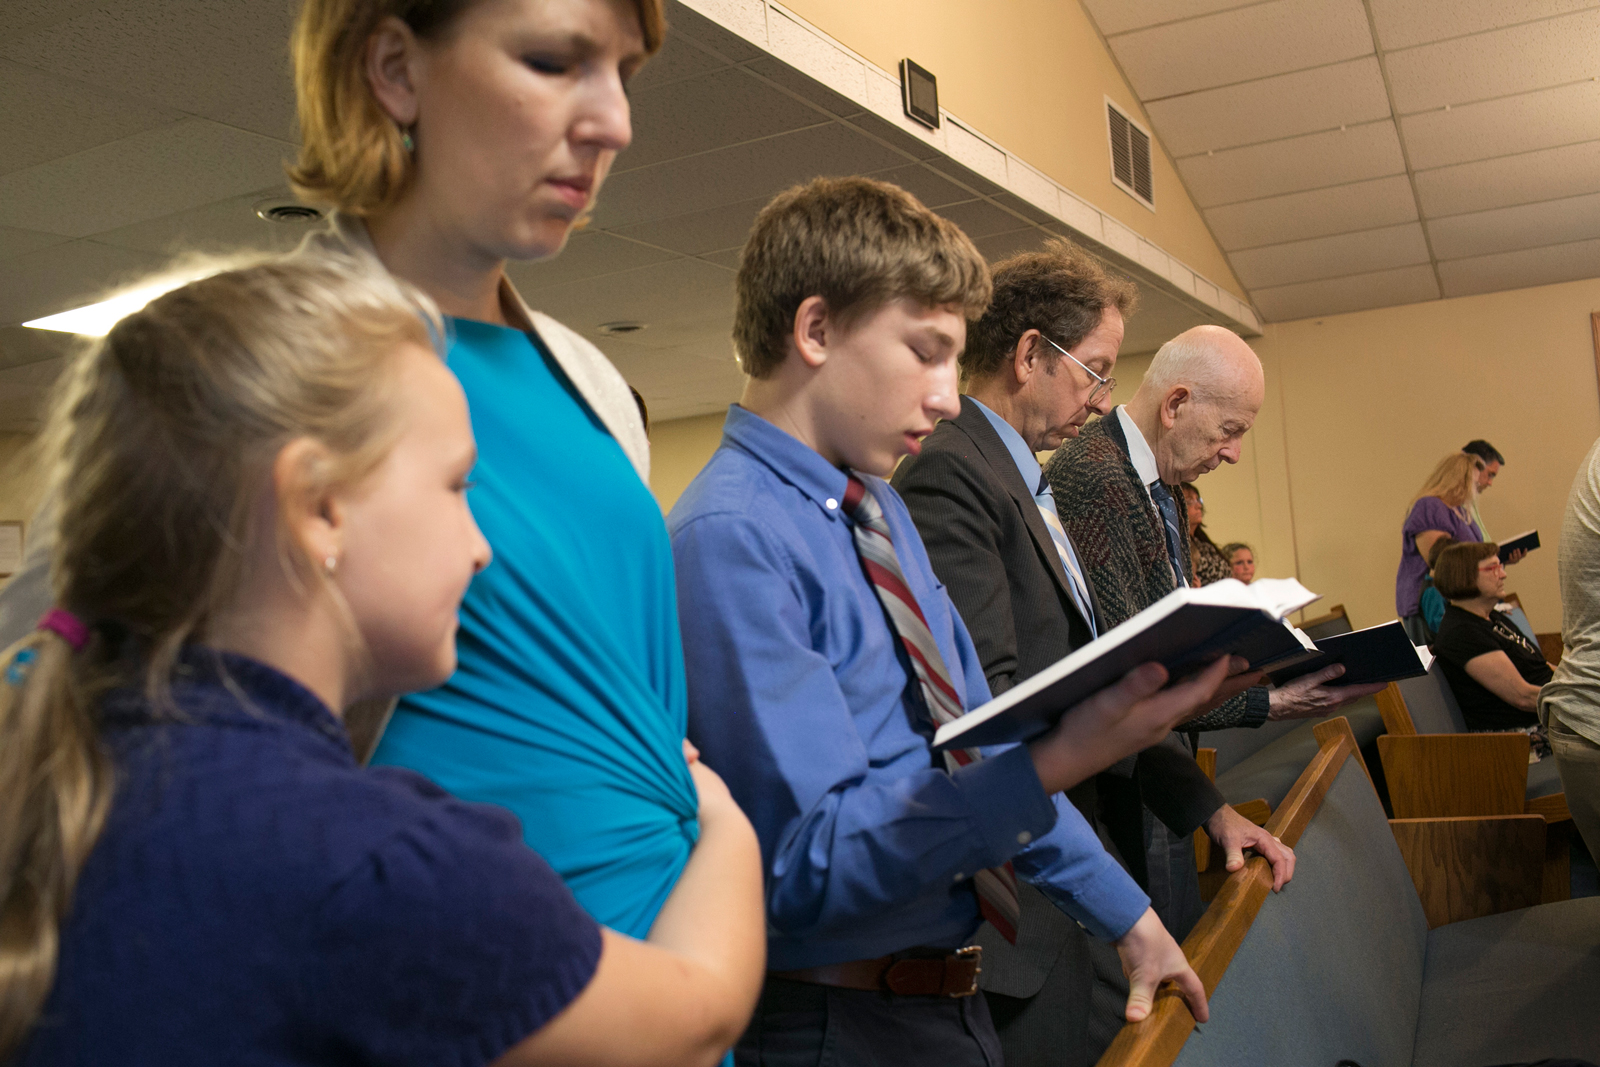 Fowle and his family attendevening services atBethel Baptist Church.